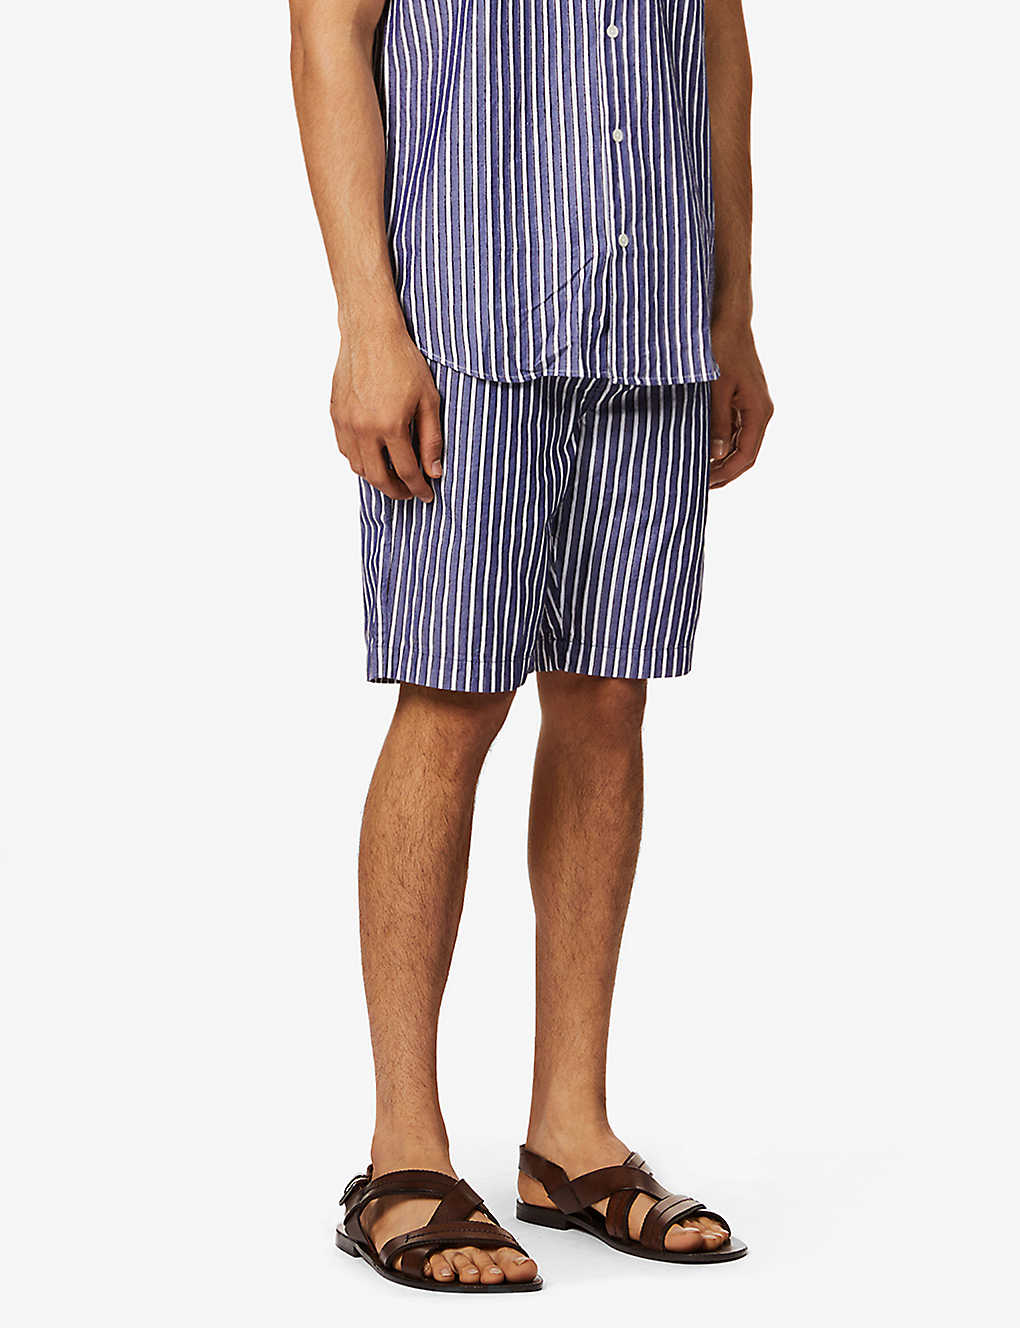 FRESCOBOL CARIOCA: Striped cotton-blend shorts